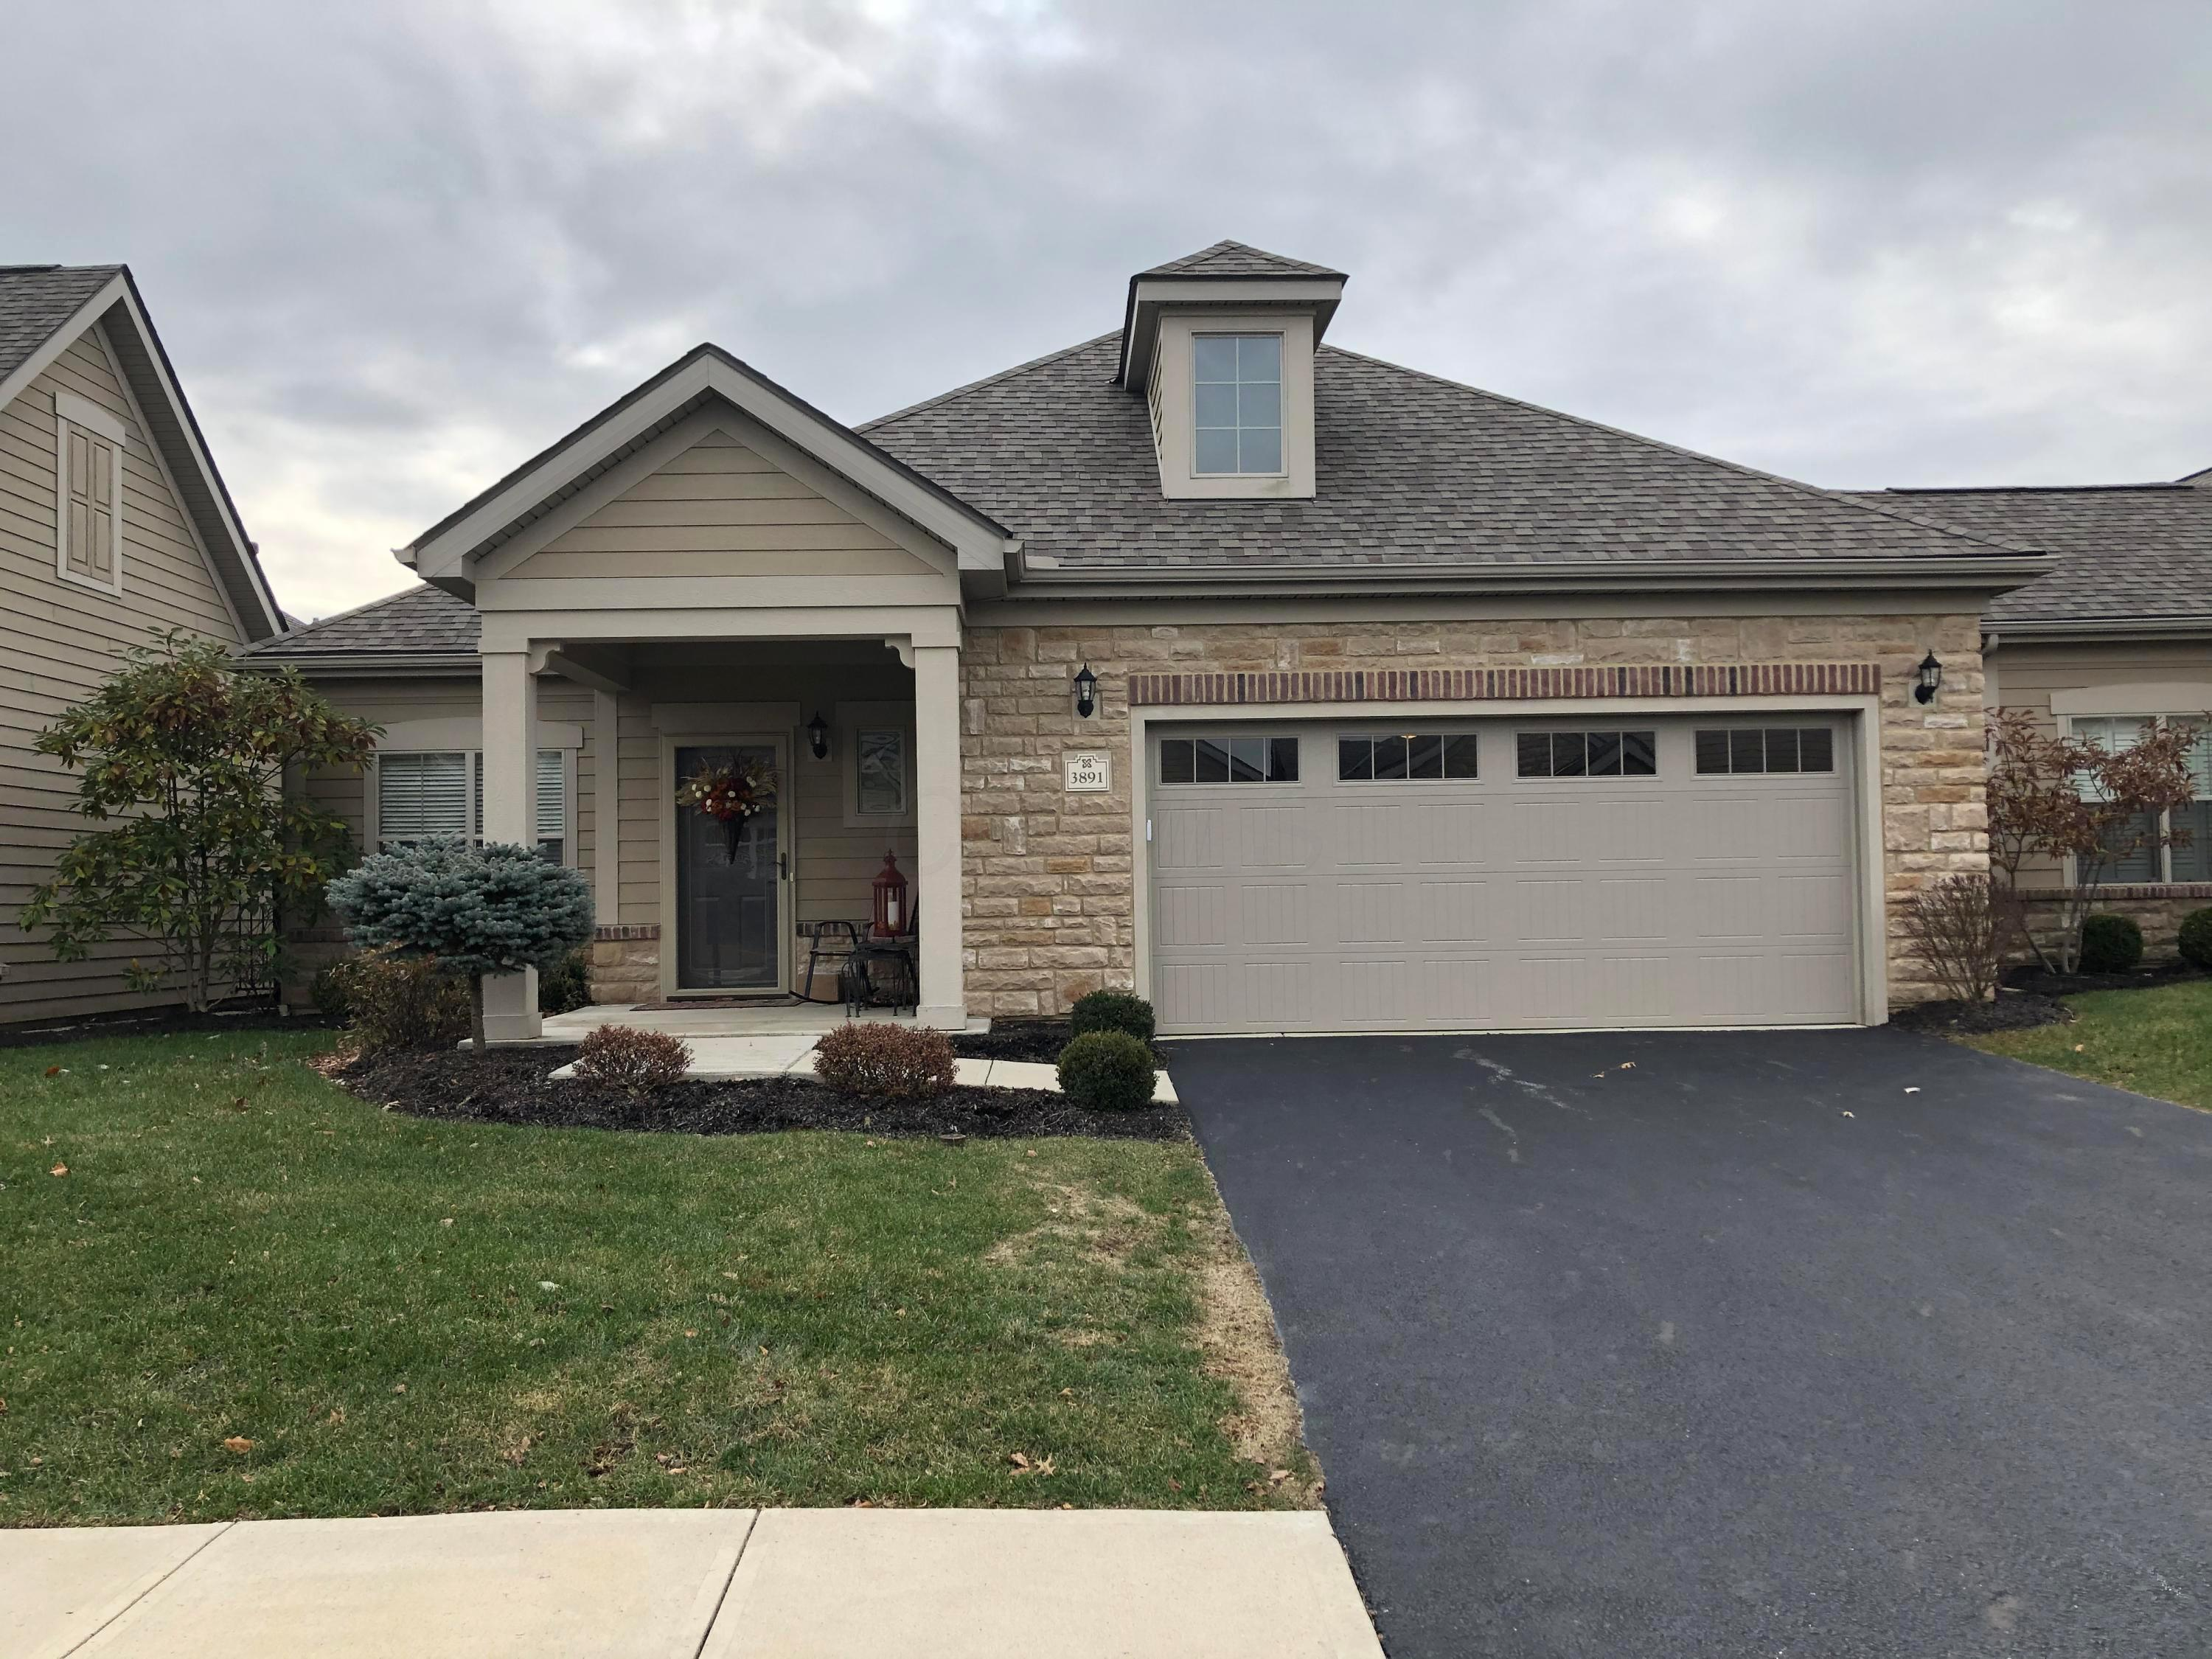 Photo of 3891 Foresta Grand Drive, Powell, OH 43065